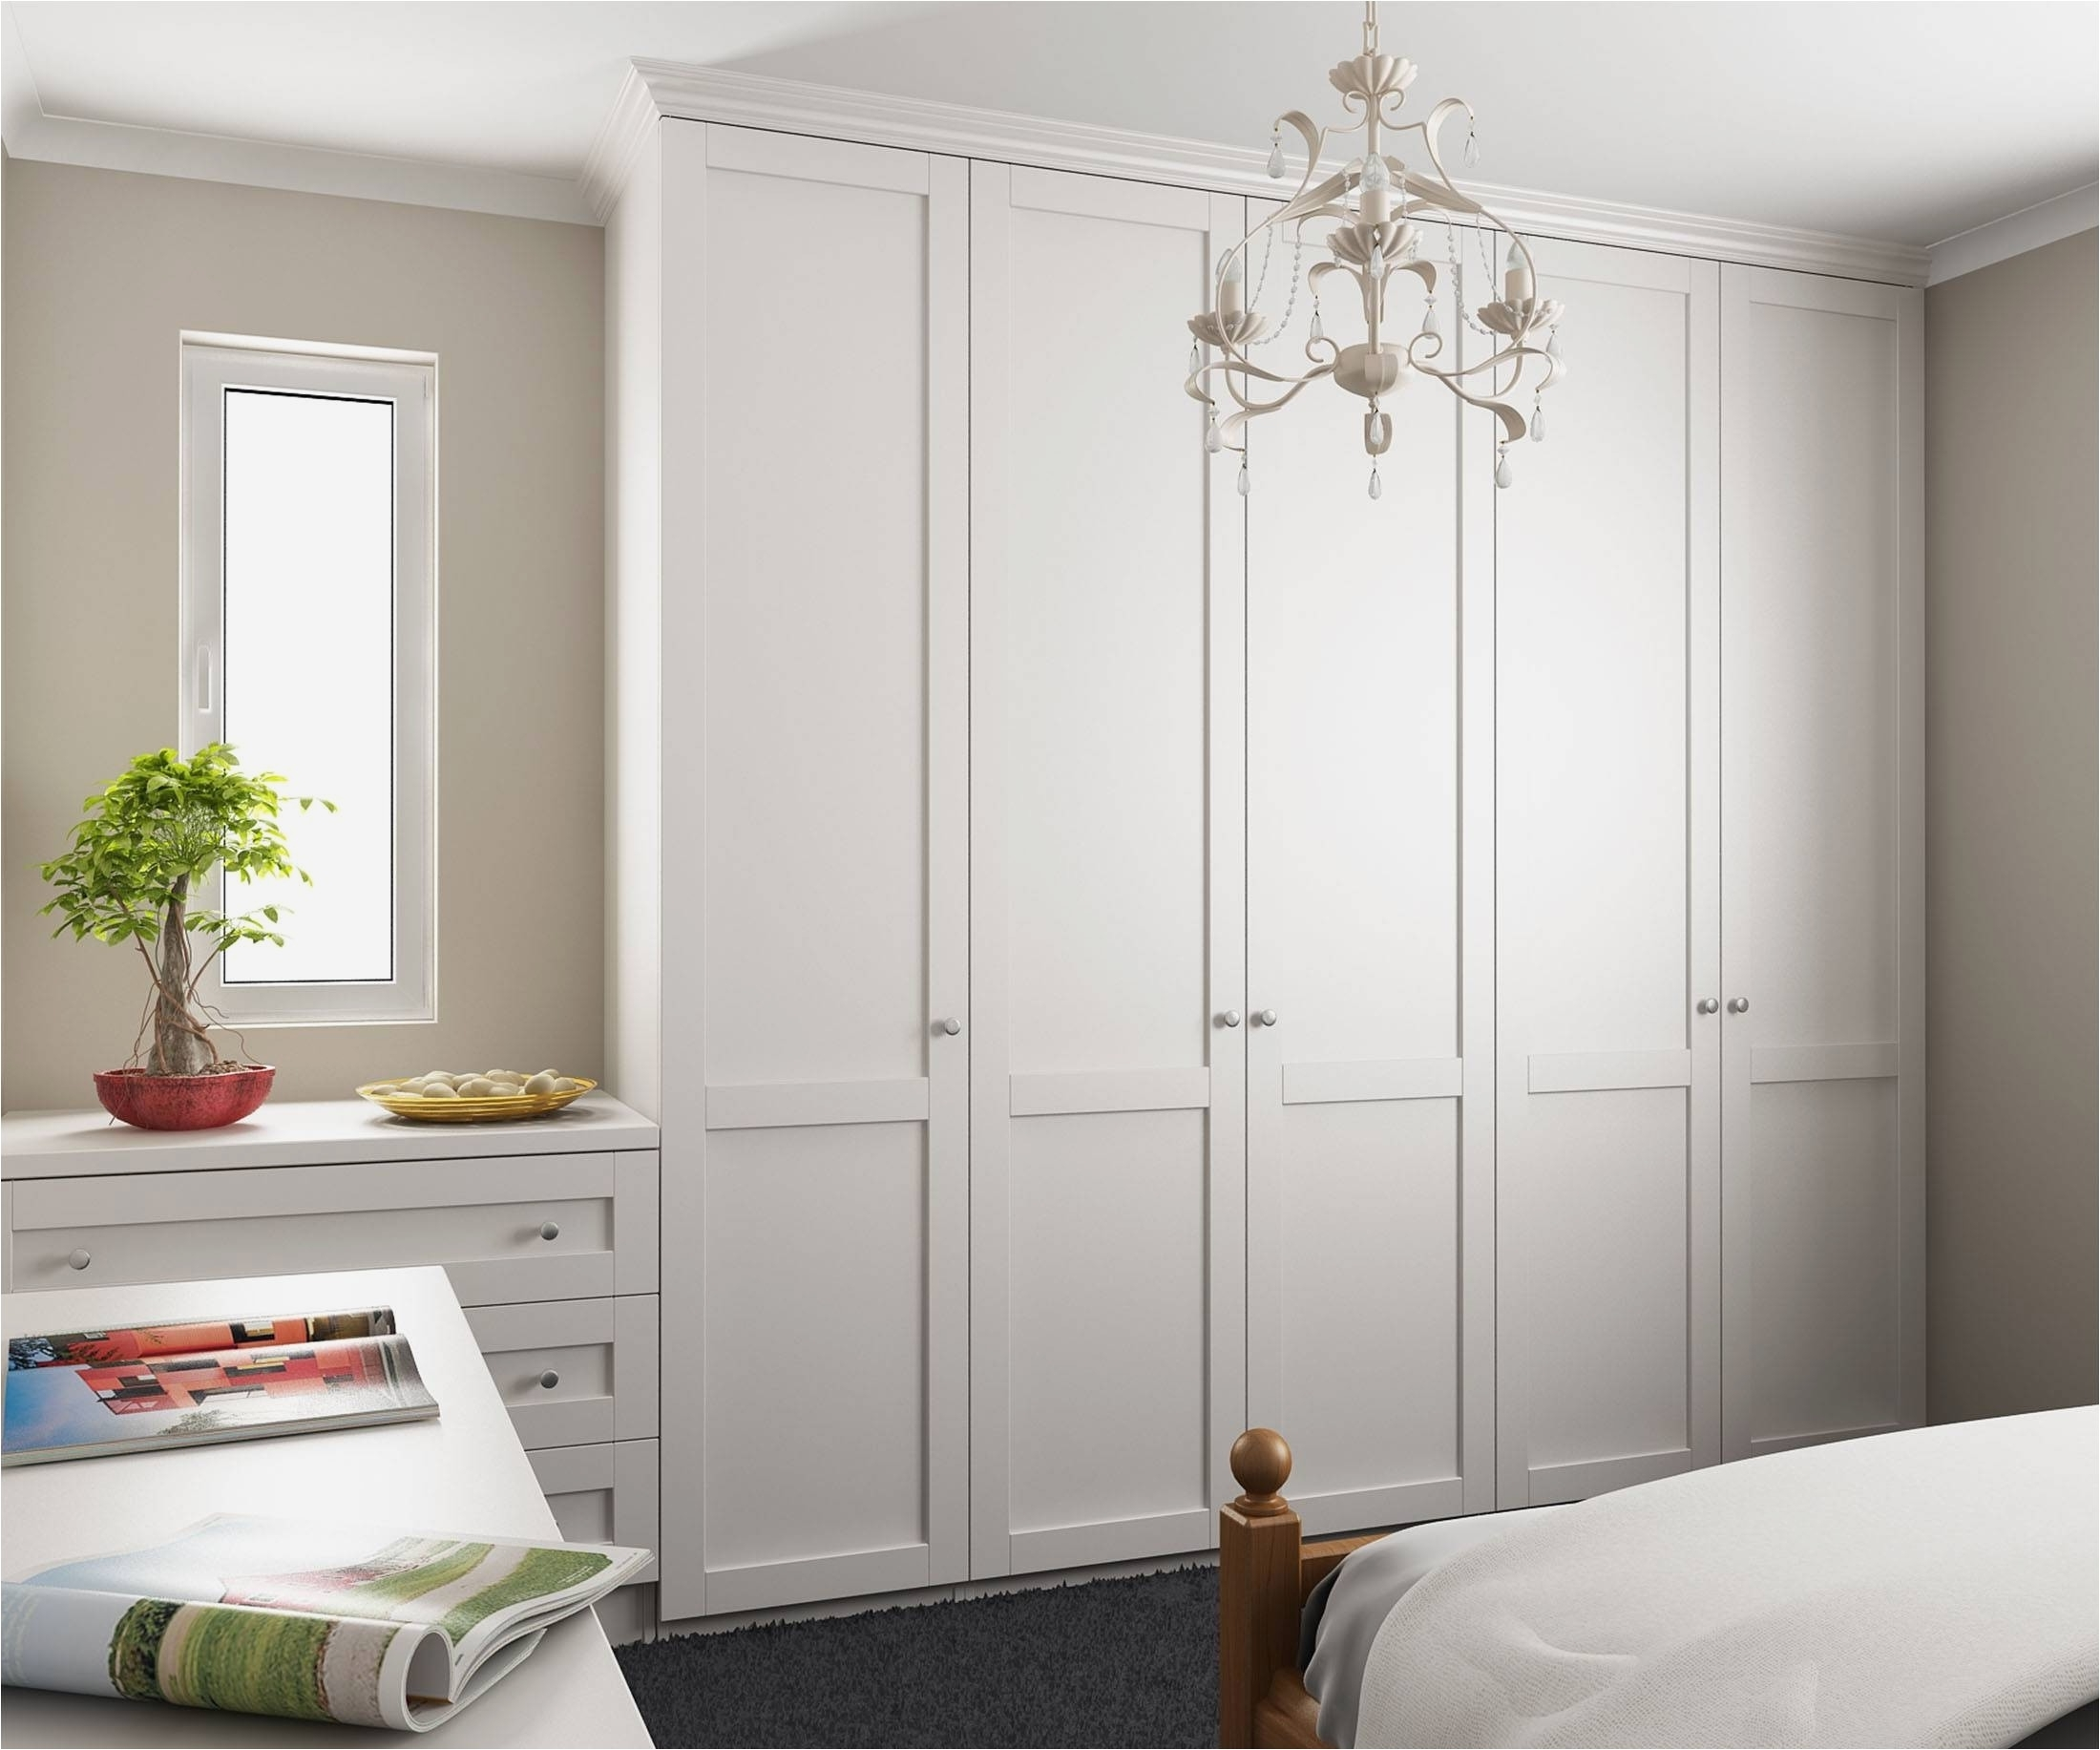 5 Door Wardrobes Bedroom Furniture Pertaining To Most Current Bedroom Furniture Ideas Inspirational 15 Best Ideas Of 5 Door (View 4 of 15)